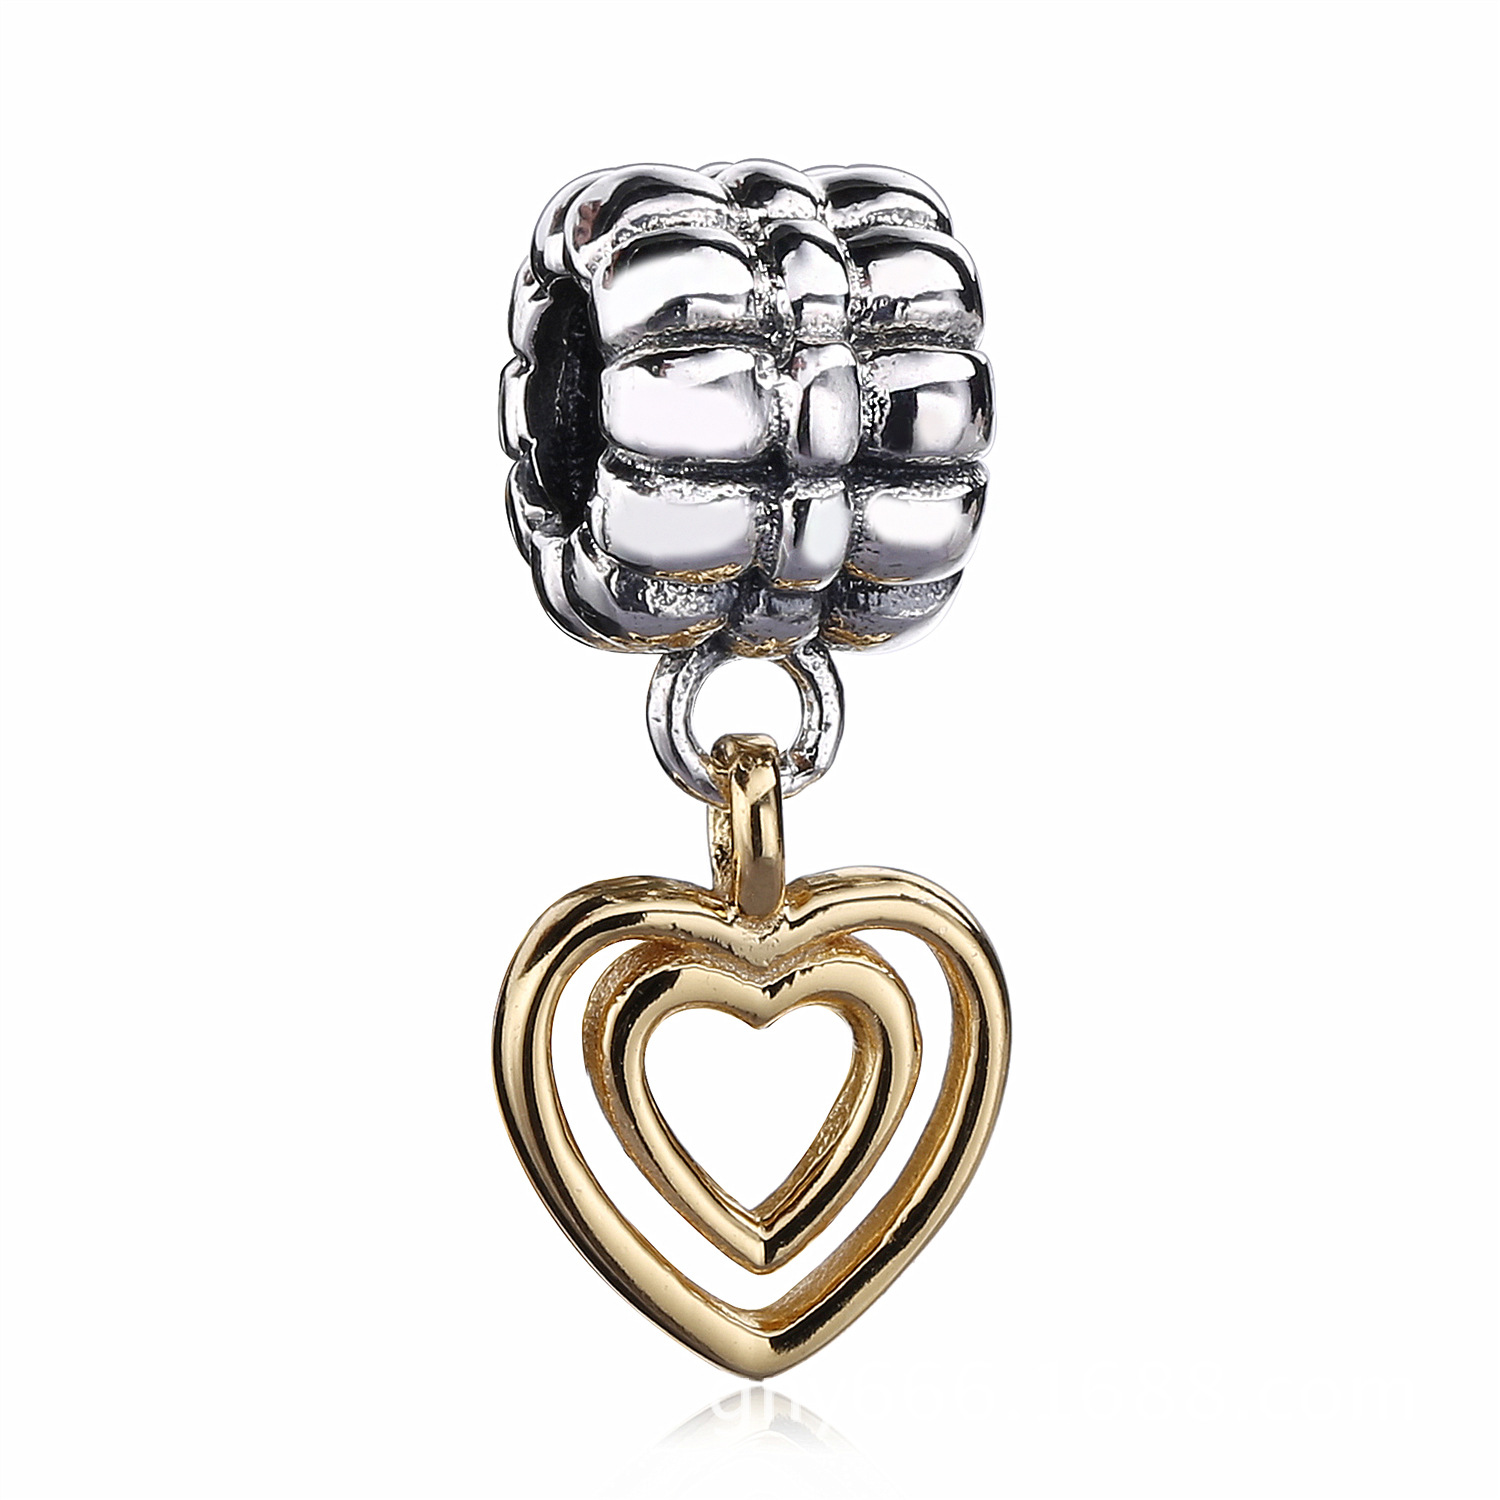 cb1481afa Authentic 925 Sterling Silver Friendship Love Gold Heart Charm Beads With  Clear Cz ...